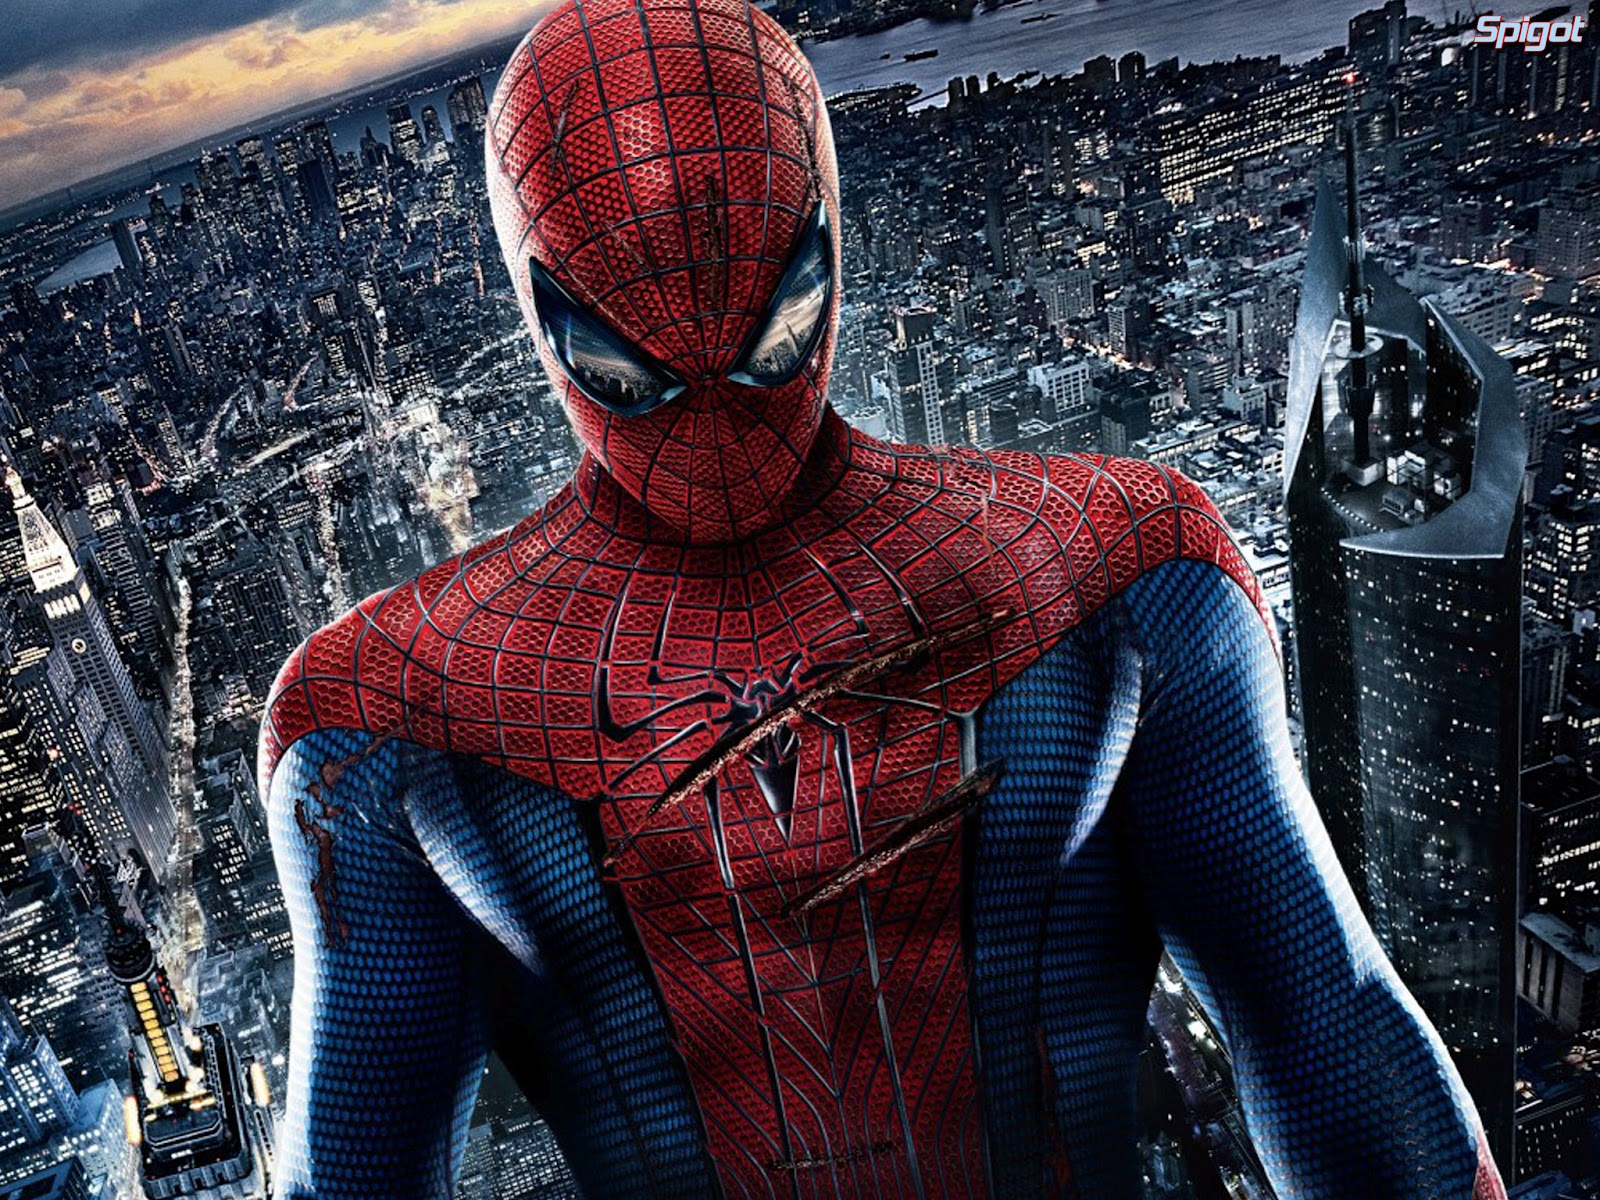 Peter Parker Amazing Spider Man Wallpapers HD  - peter parker amazing spider man wallpapers